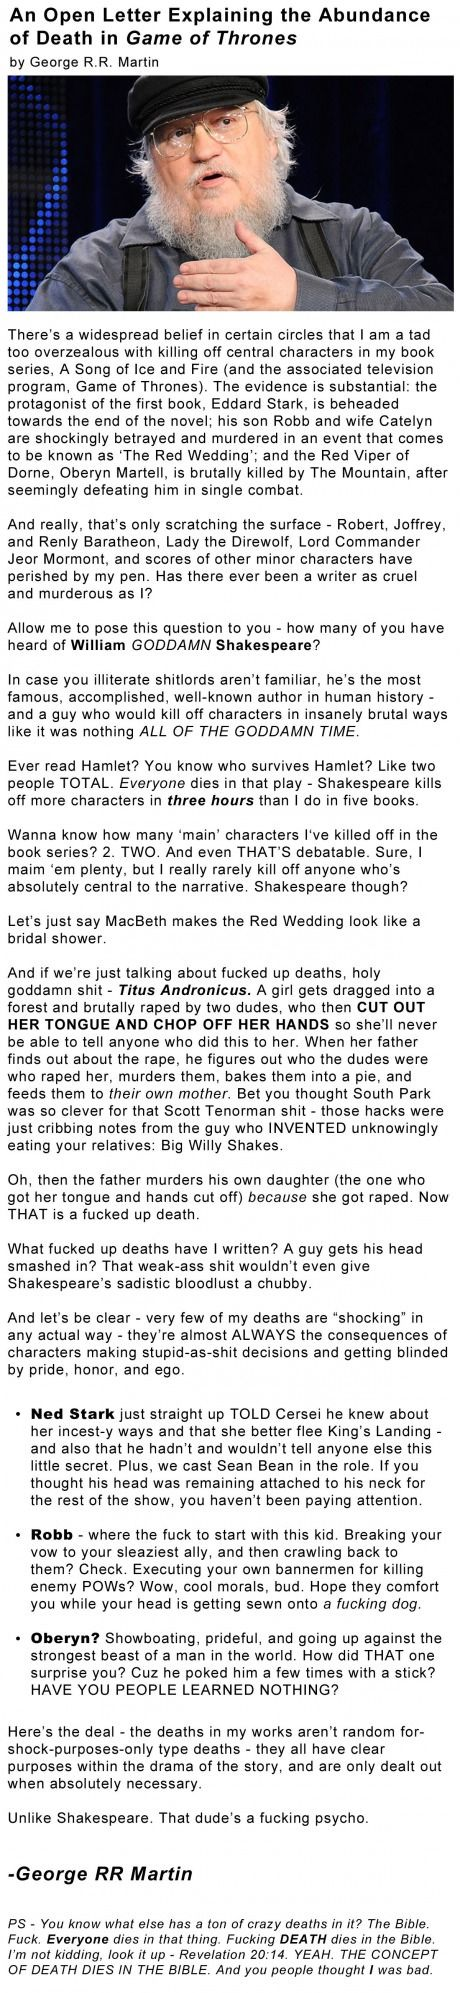 George R.R. Martin's Open Letter About the Deaths in Game of Thrones